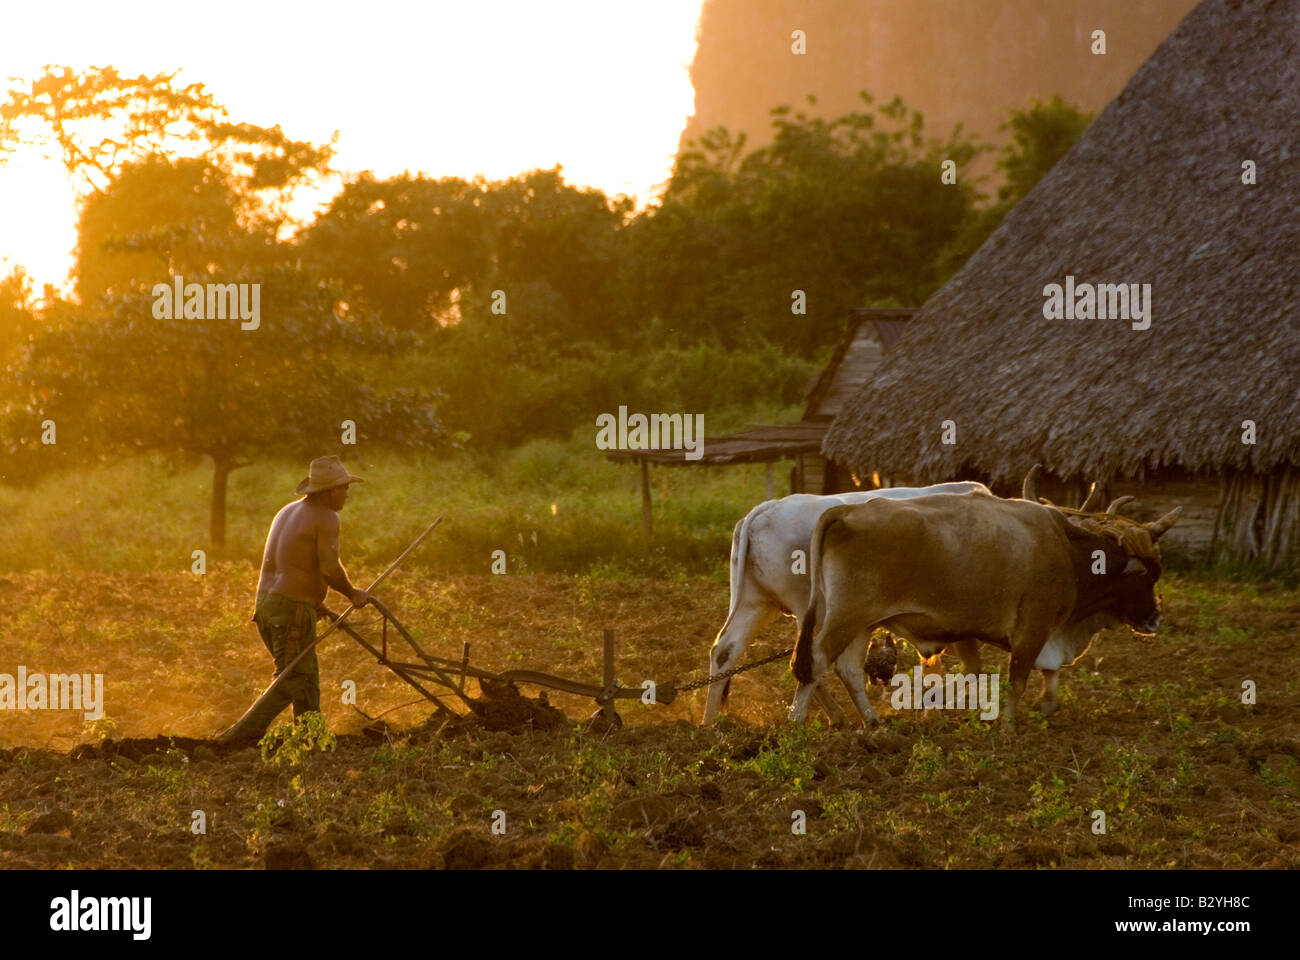 Cuban tobacco farmer ploughing field with oxen ready to plant in tobacco producing region of Viñales Cuba Stock Photo